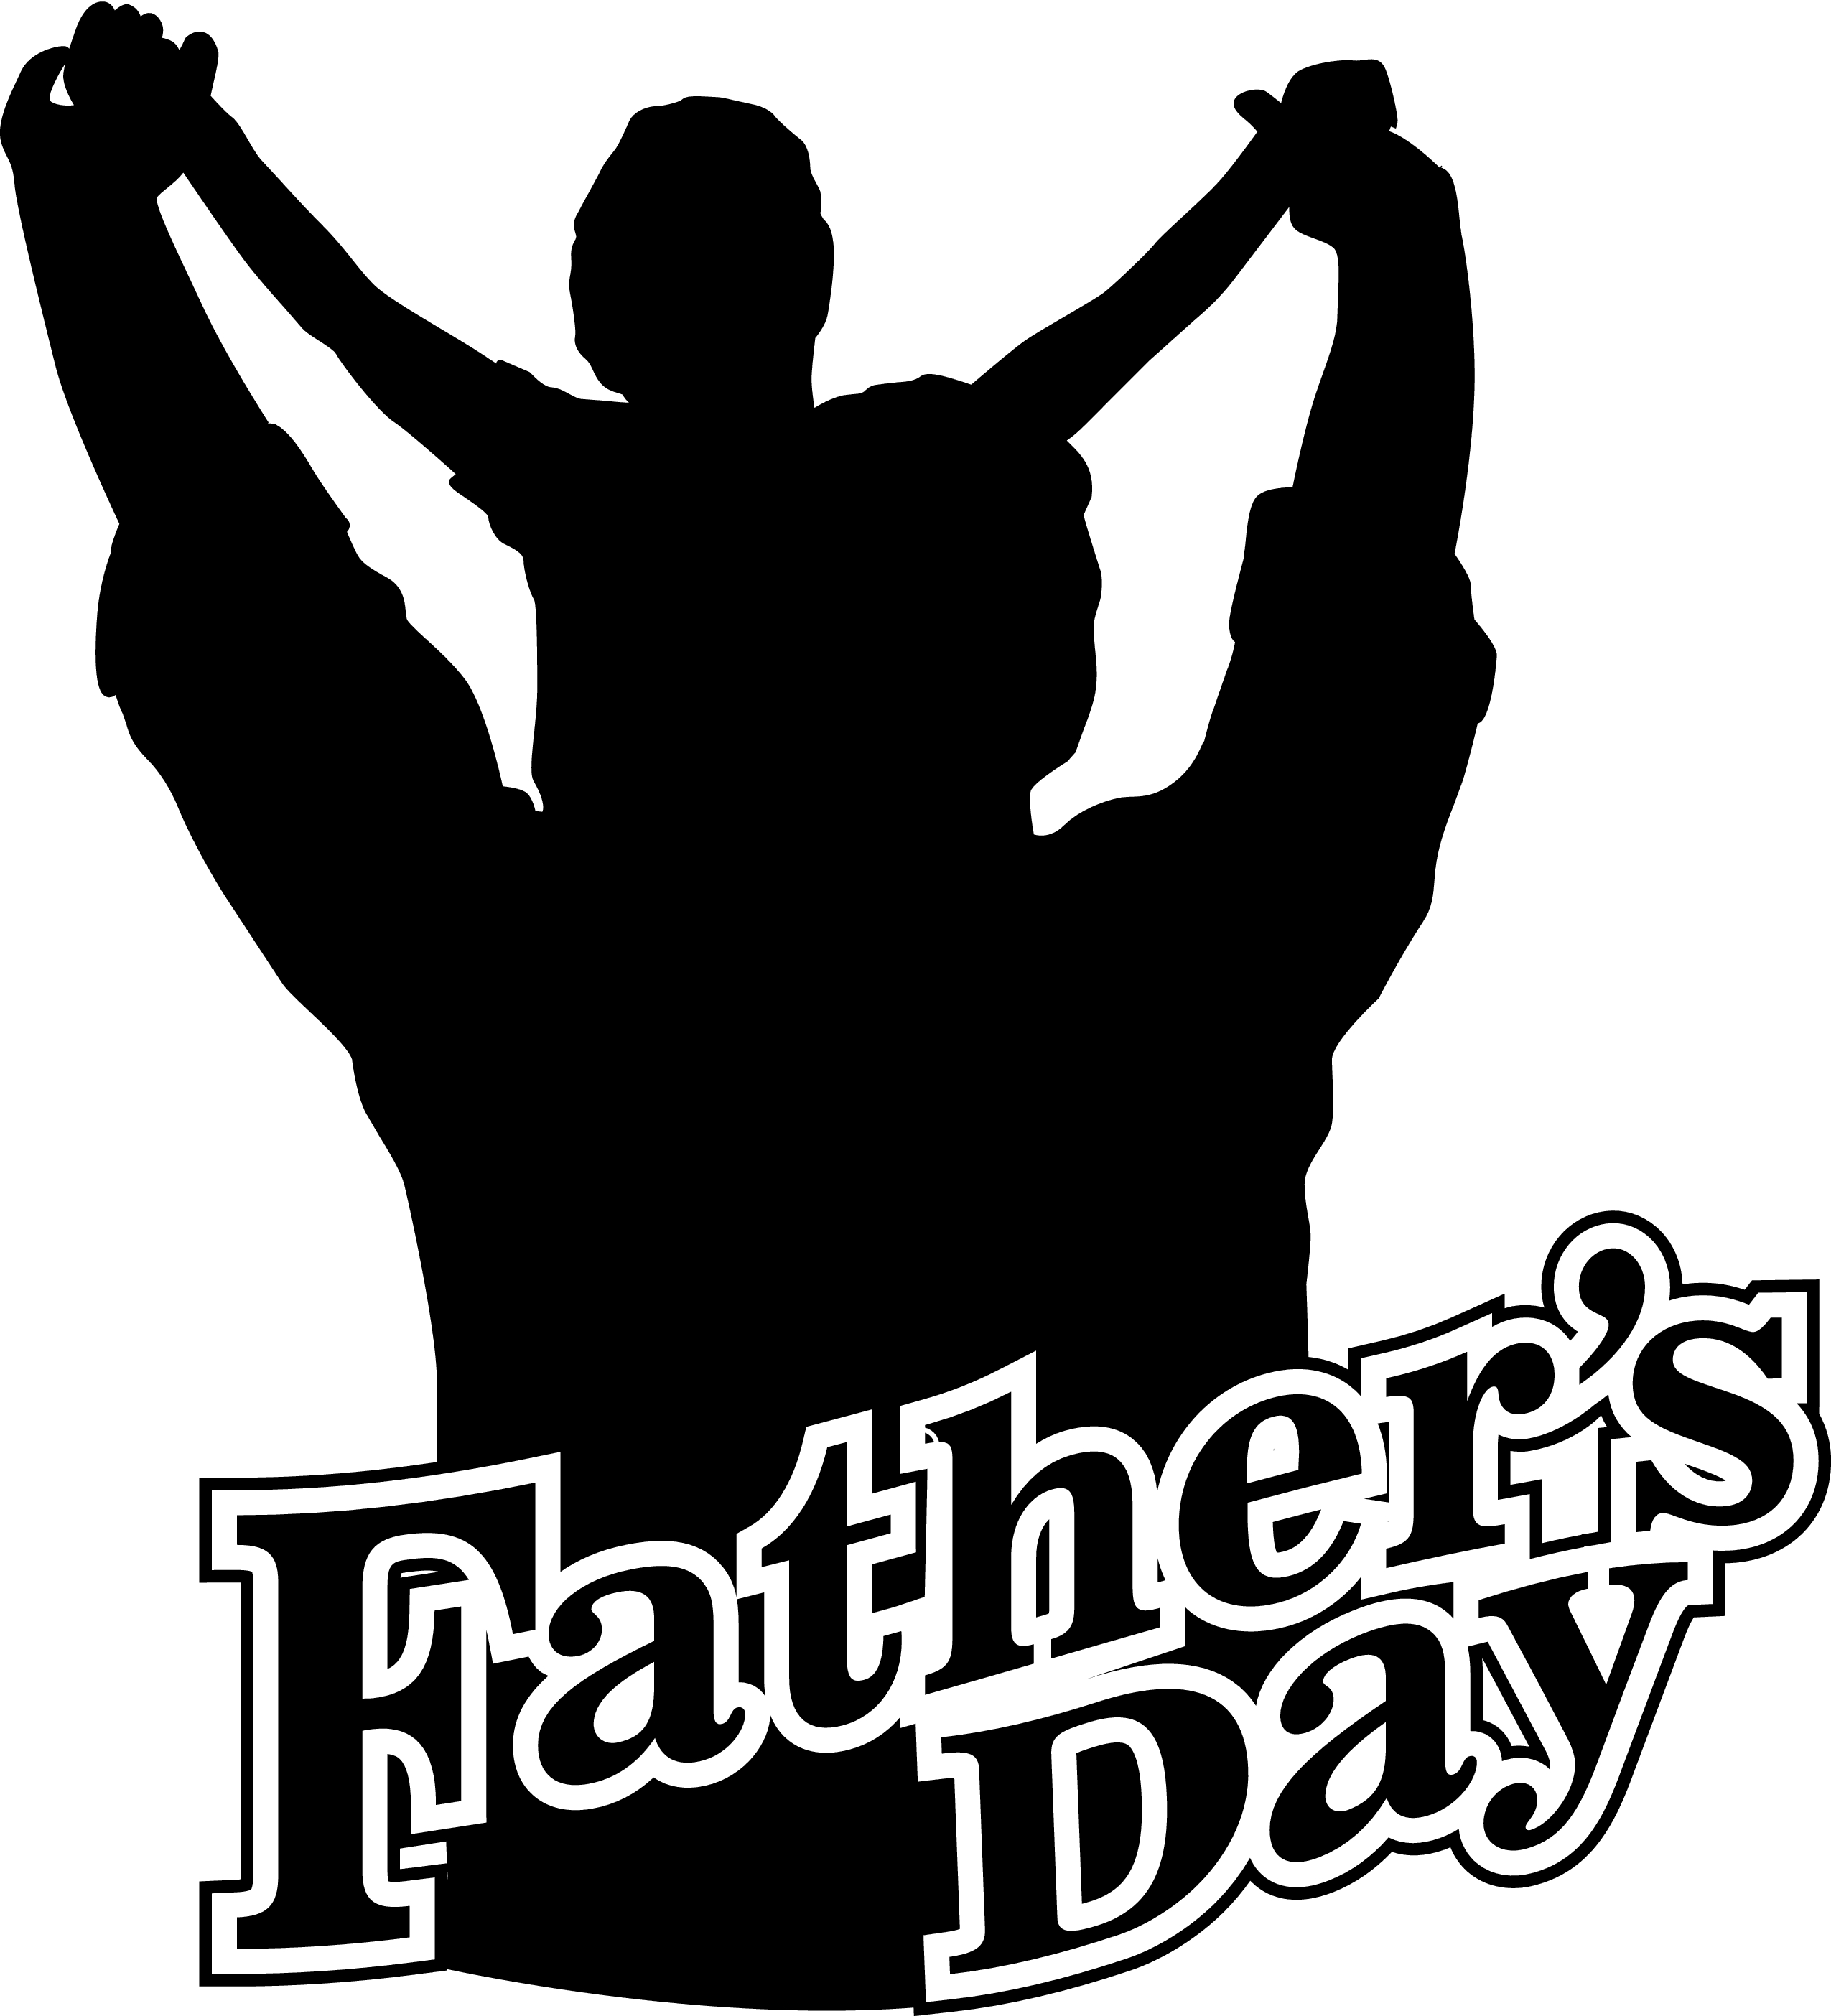 2550x2808 Fathers Day Silhouette Clipart